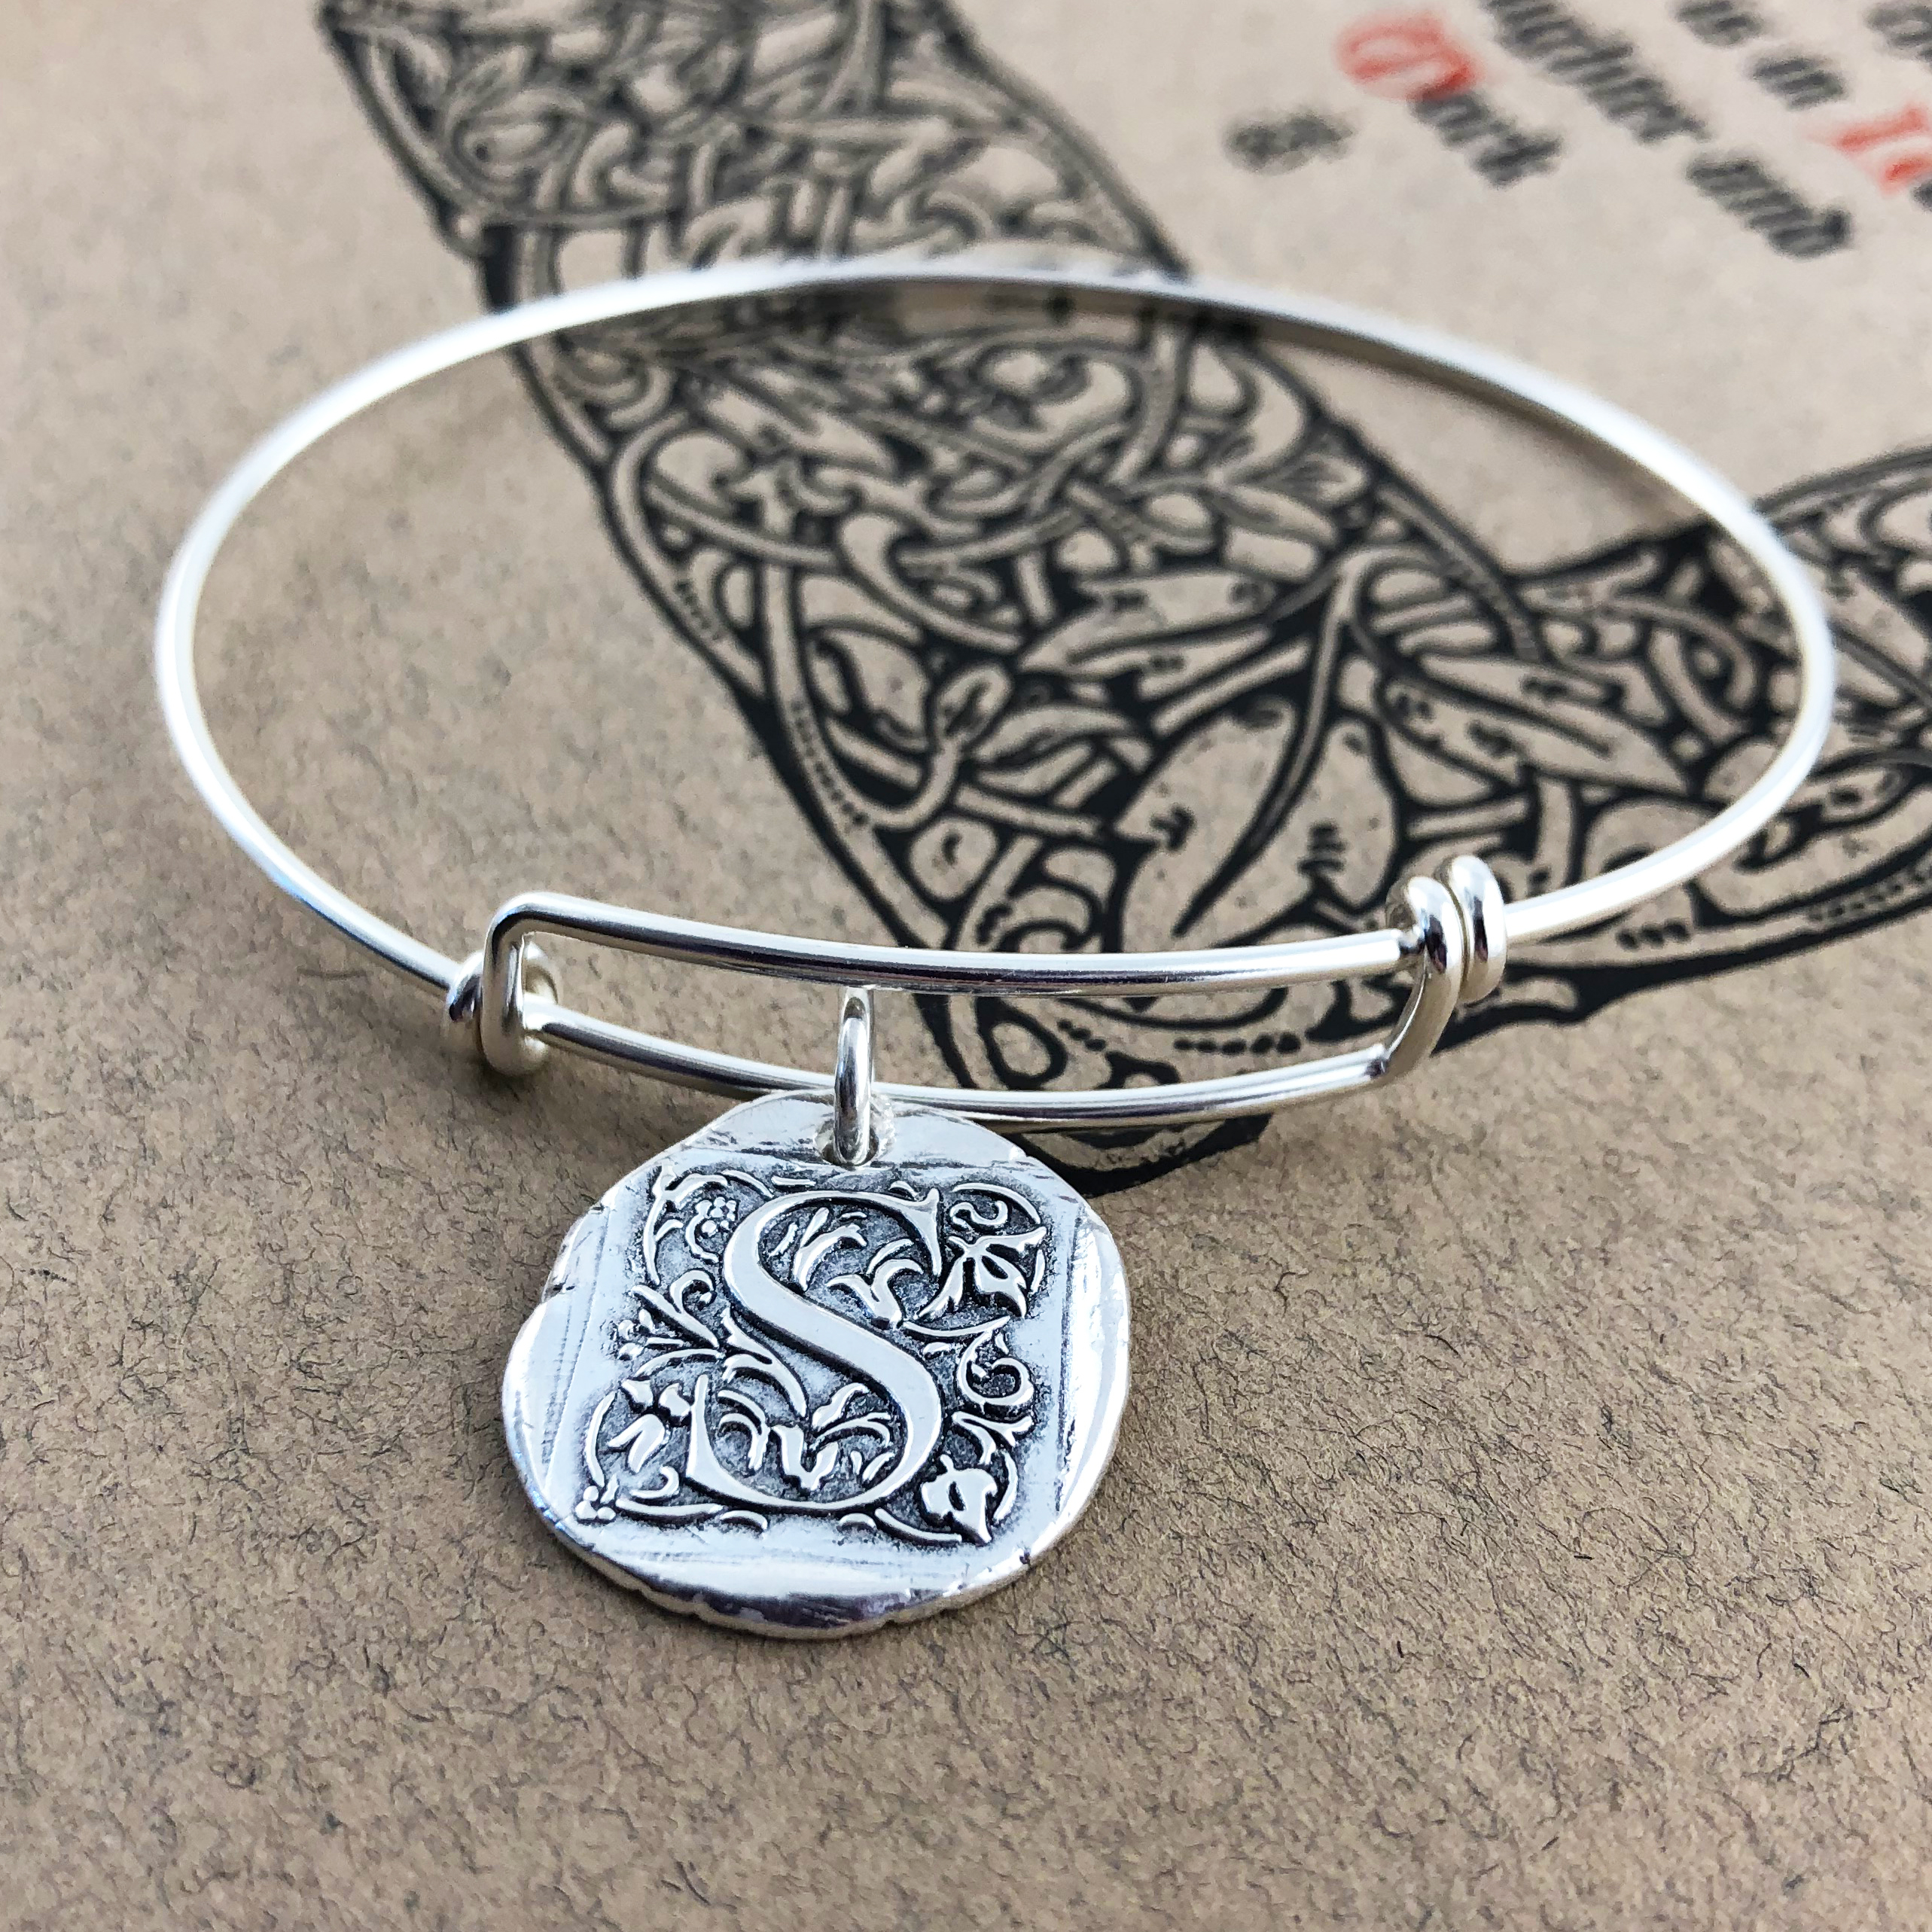 Initial Cap Wax Seal Charm shown on bangle